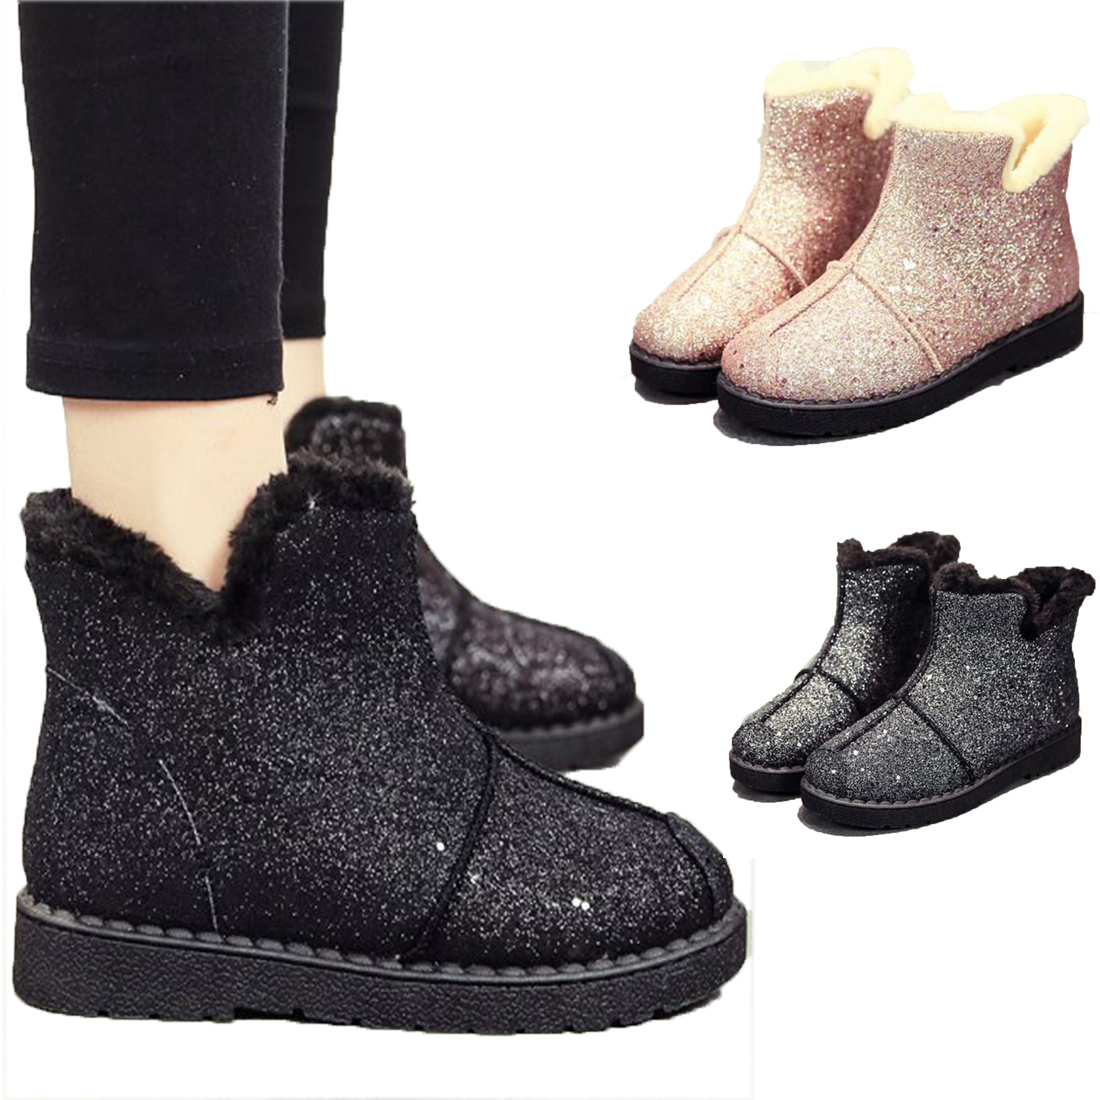 2017 Hot sale Bling Glitter snow Boots plush Warm women boots Flat Cotton Sequined Ankle Boots